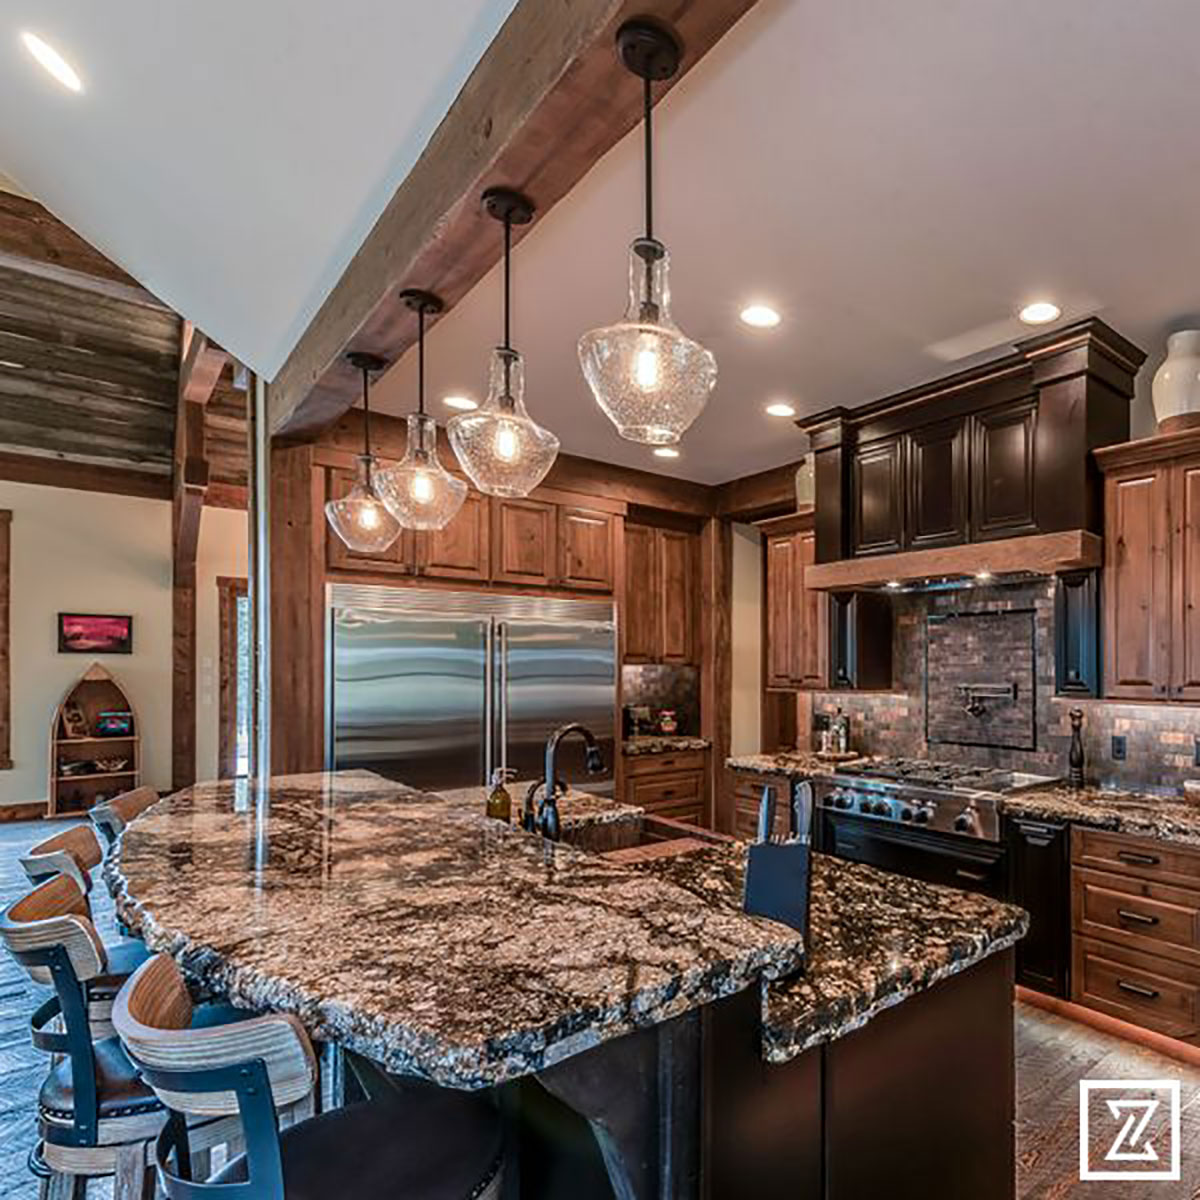 Well lit kitchen with hanging lights over the island with granite countertops and barstools around it